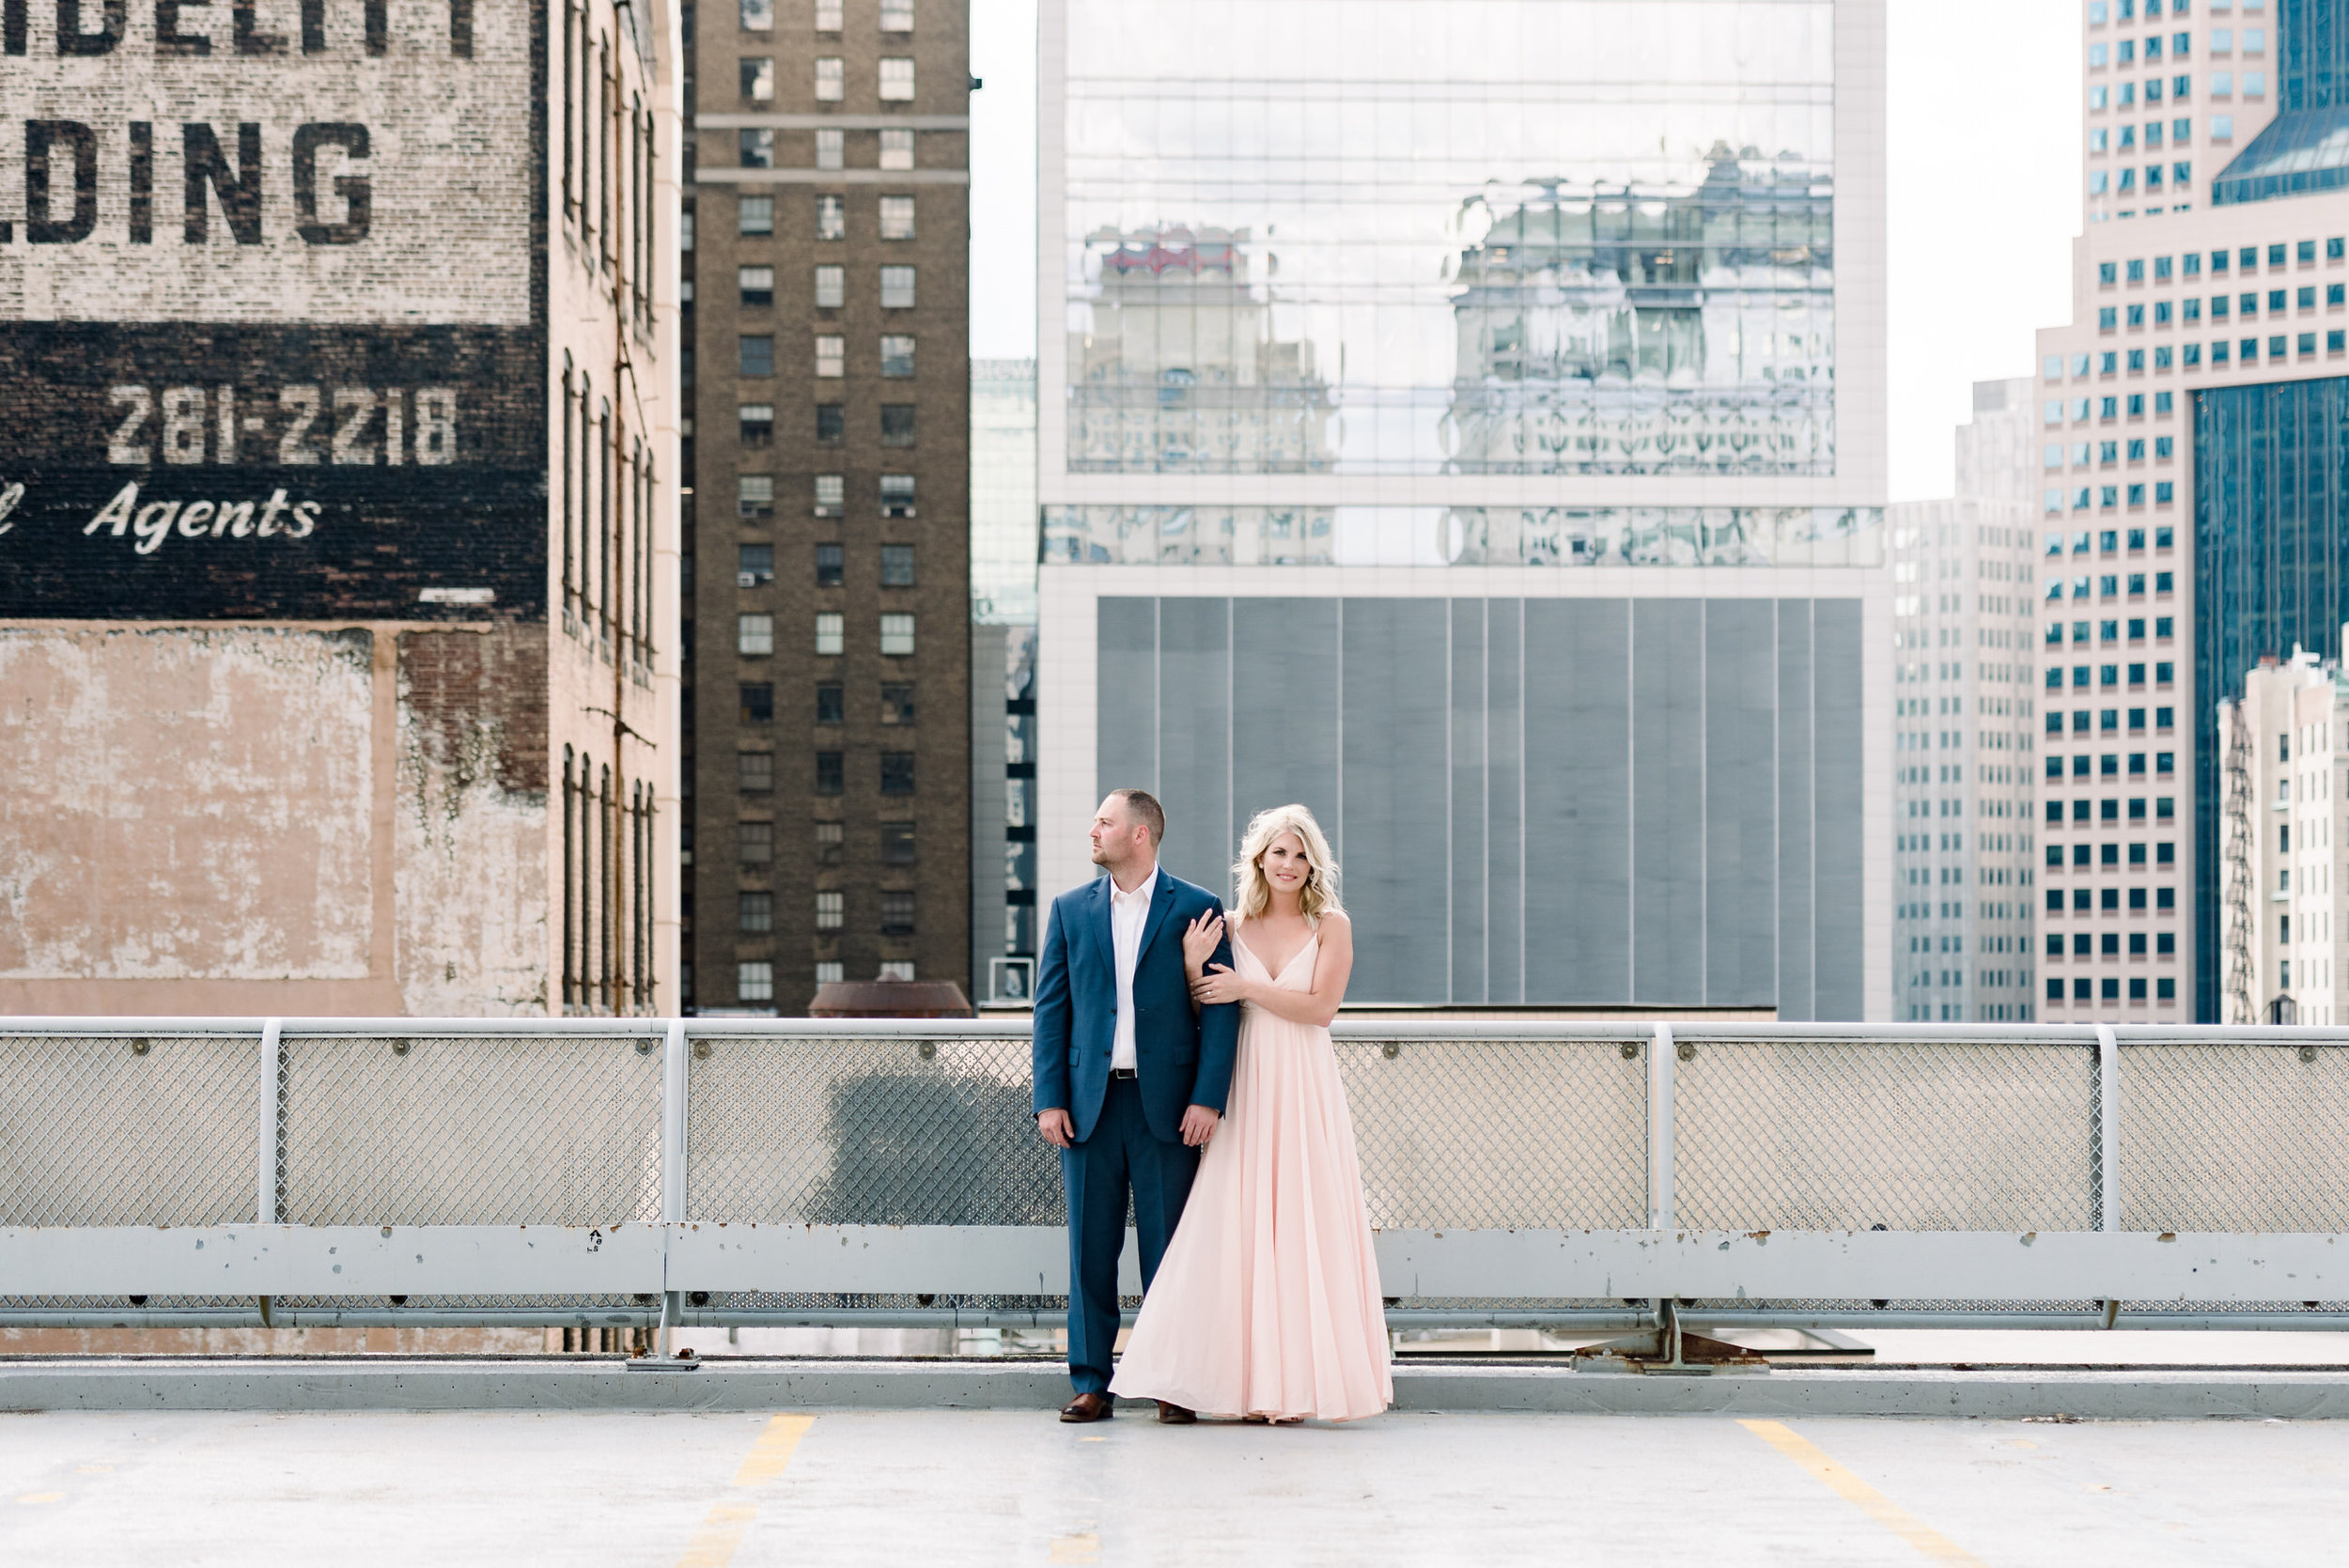 downtown-pittsburgh-rooftop-engagement-session-ashley-reed-photography25.jpg